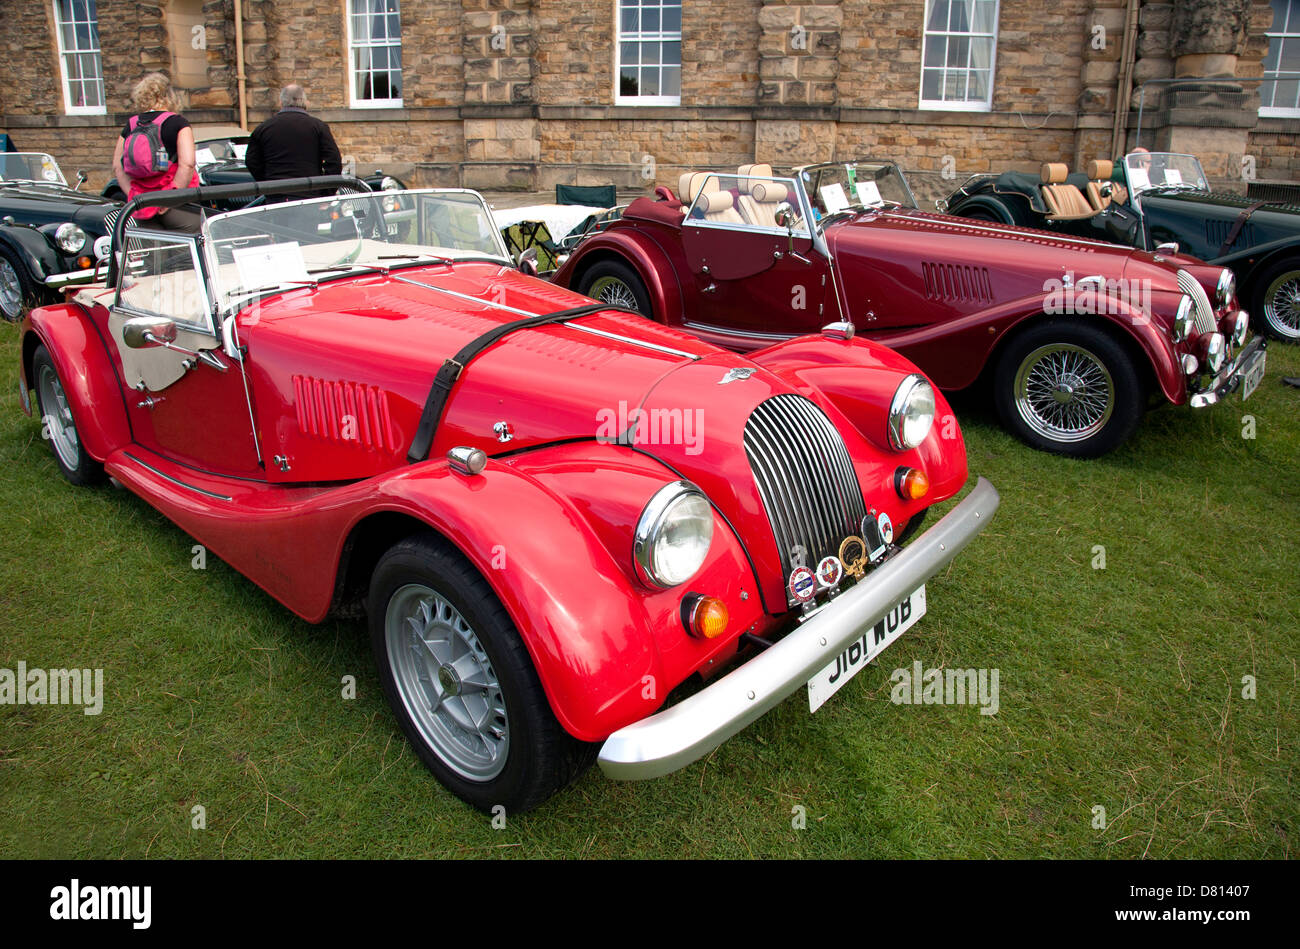 Classic Car Show Uk Stock Photos & Classic Car Show Uk Stock Images ...